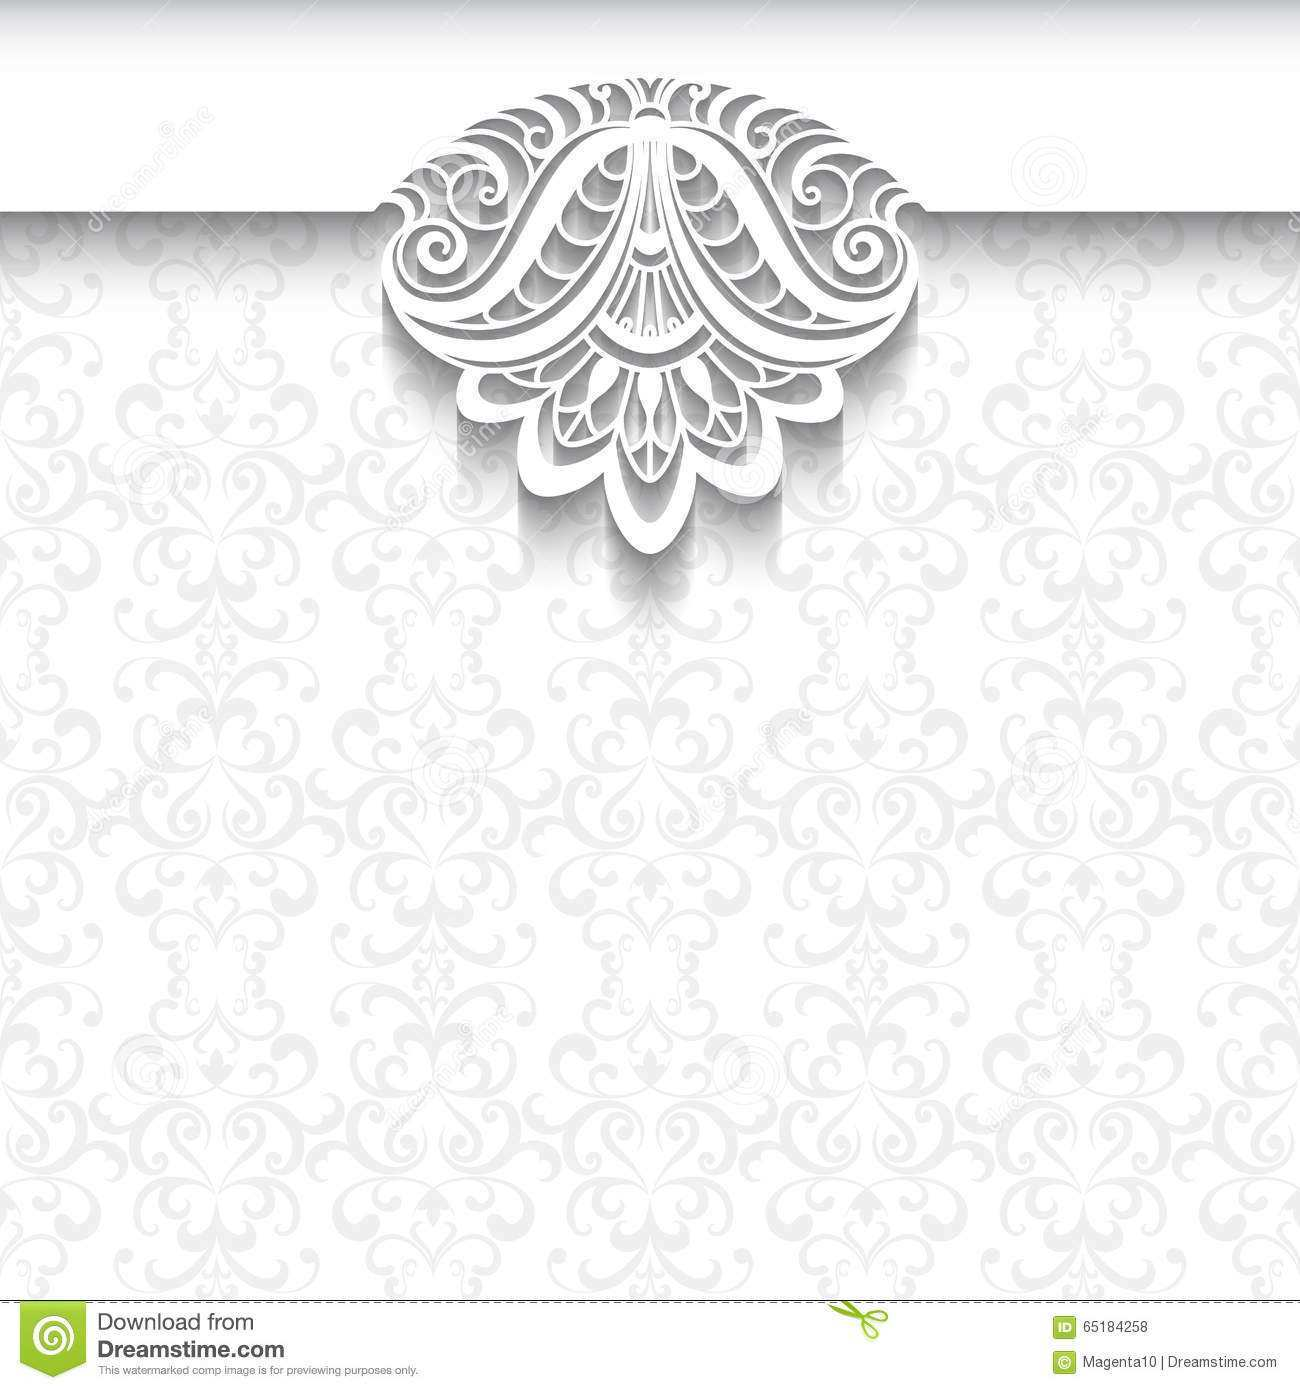 93 Printable Wedding Invitation Template Background In Word With Wedding Invitation Template Background Cards Design Templates